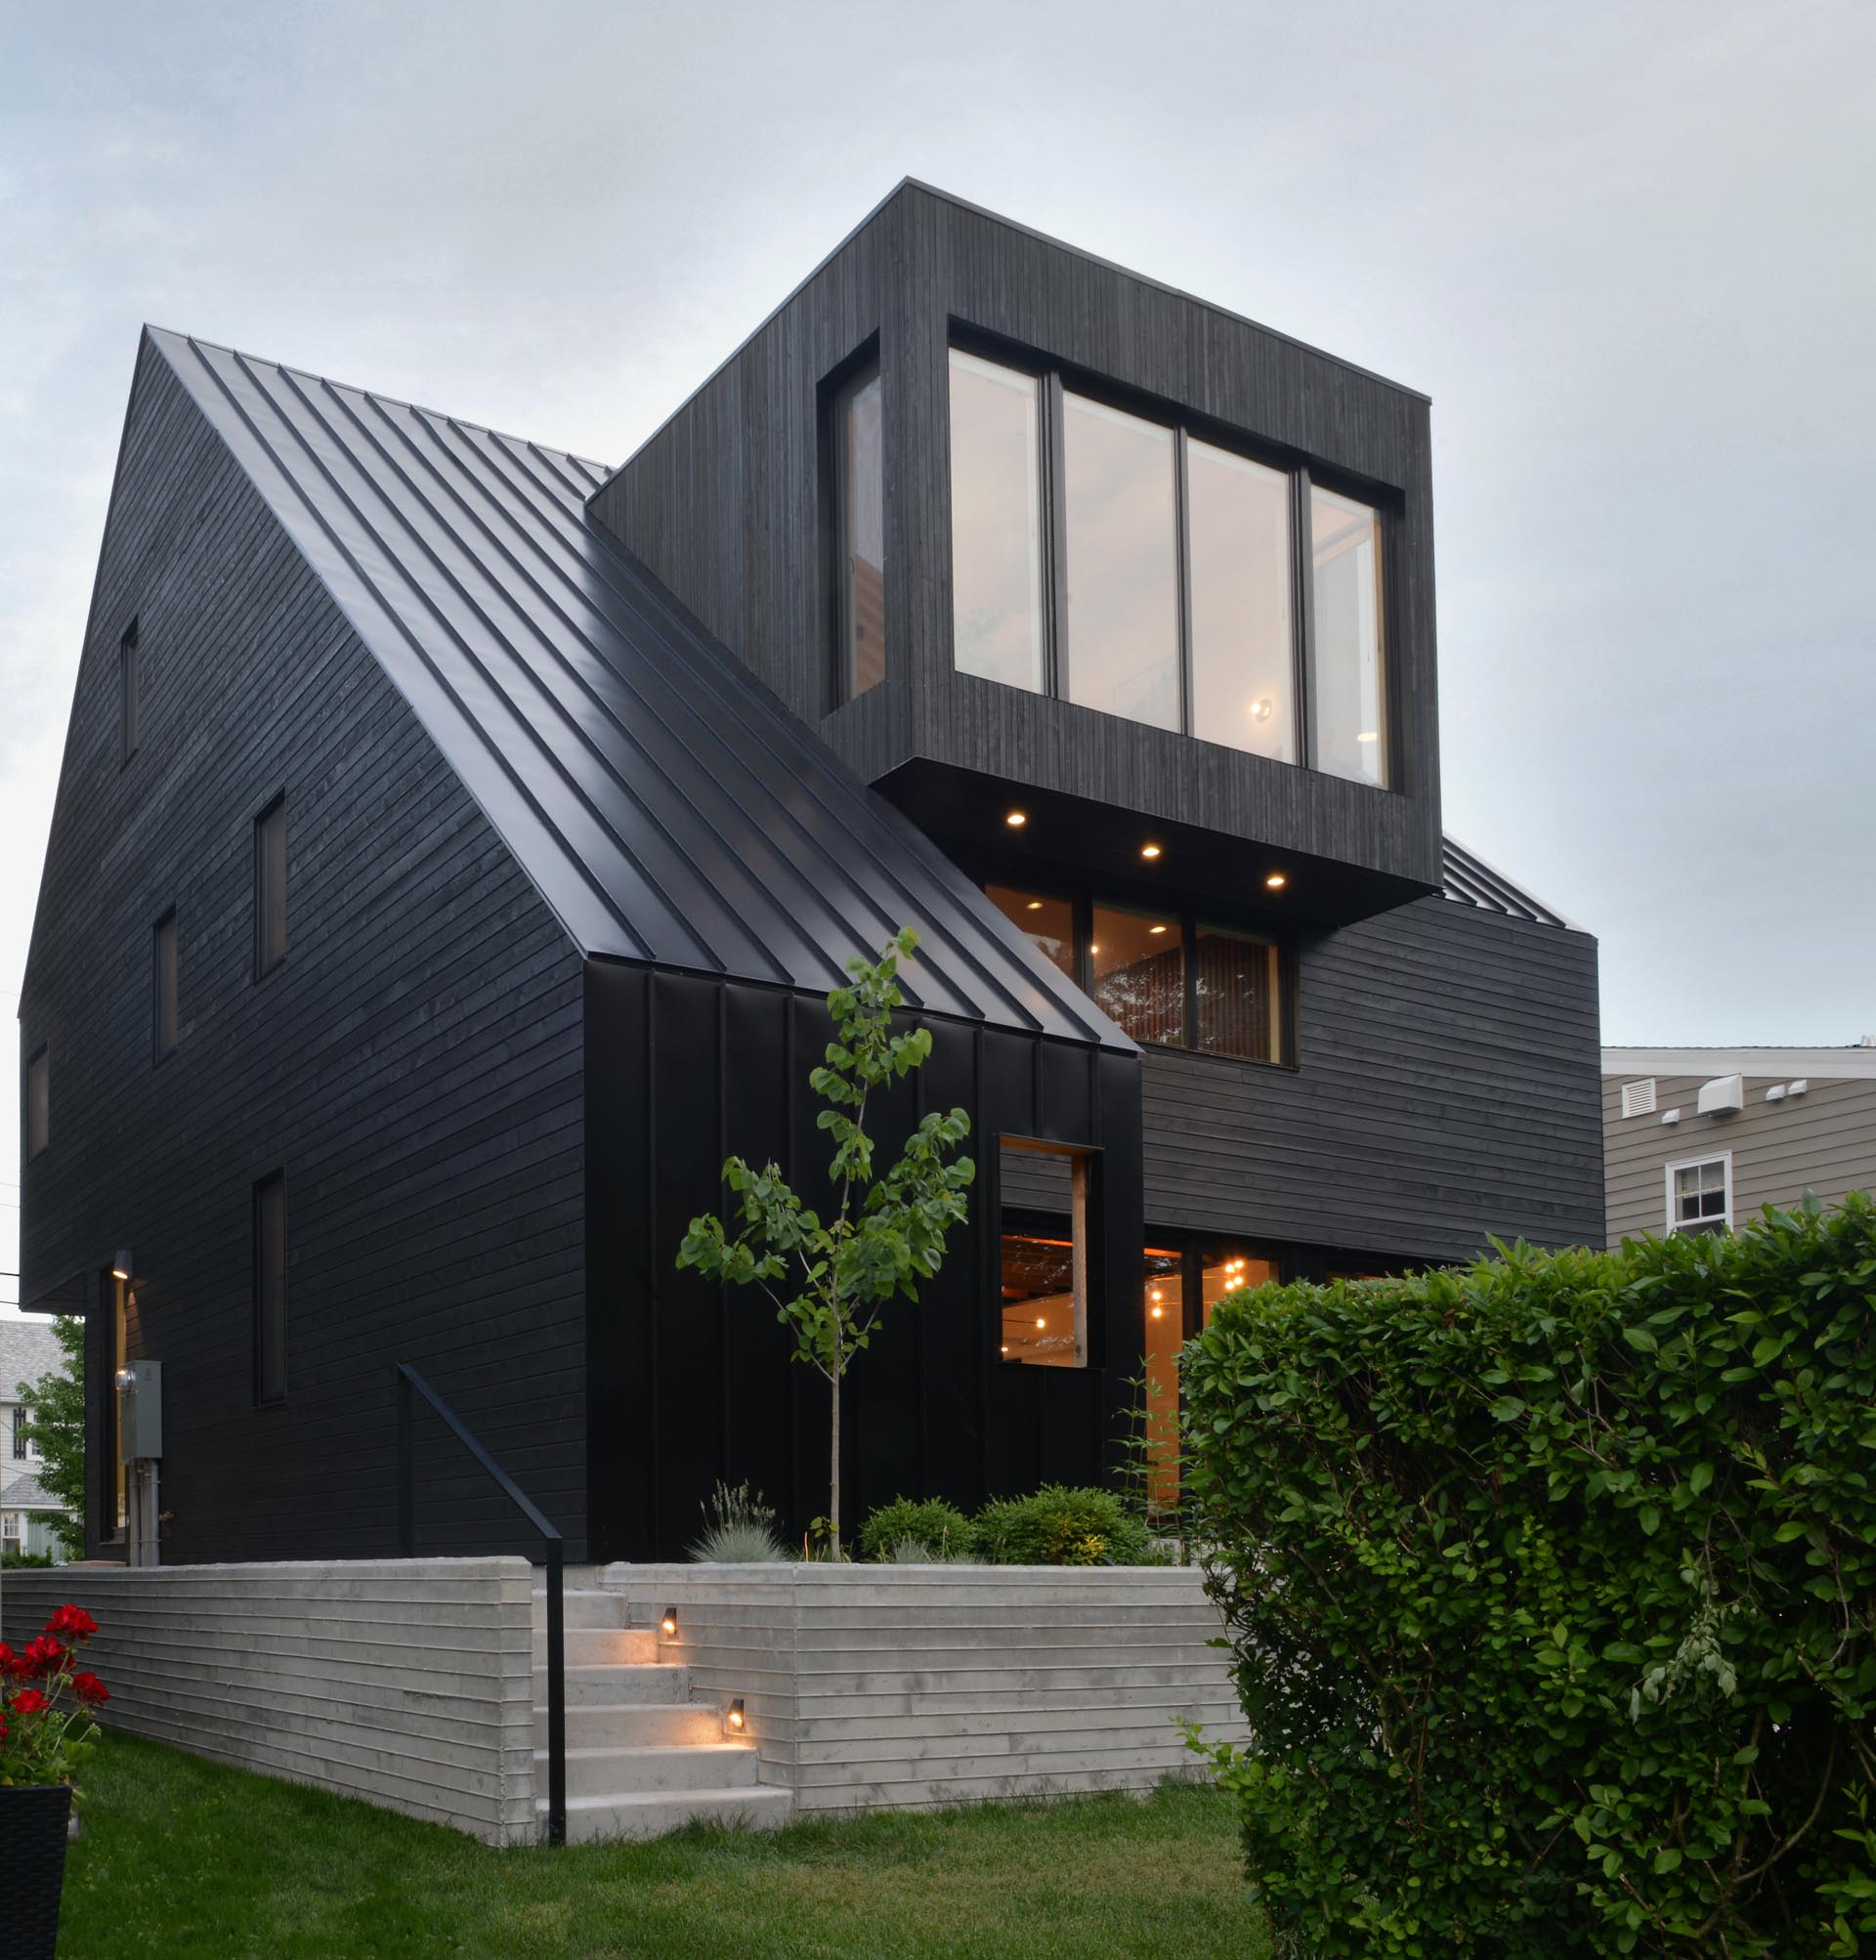 A modern black house with wood siding and a standing seam metal roof.